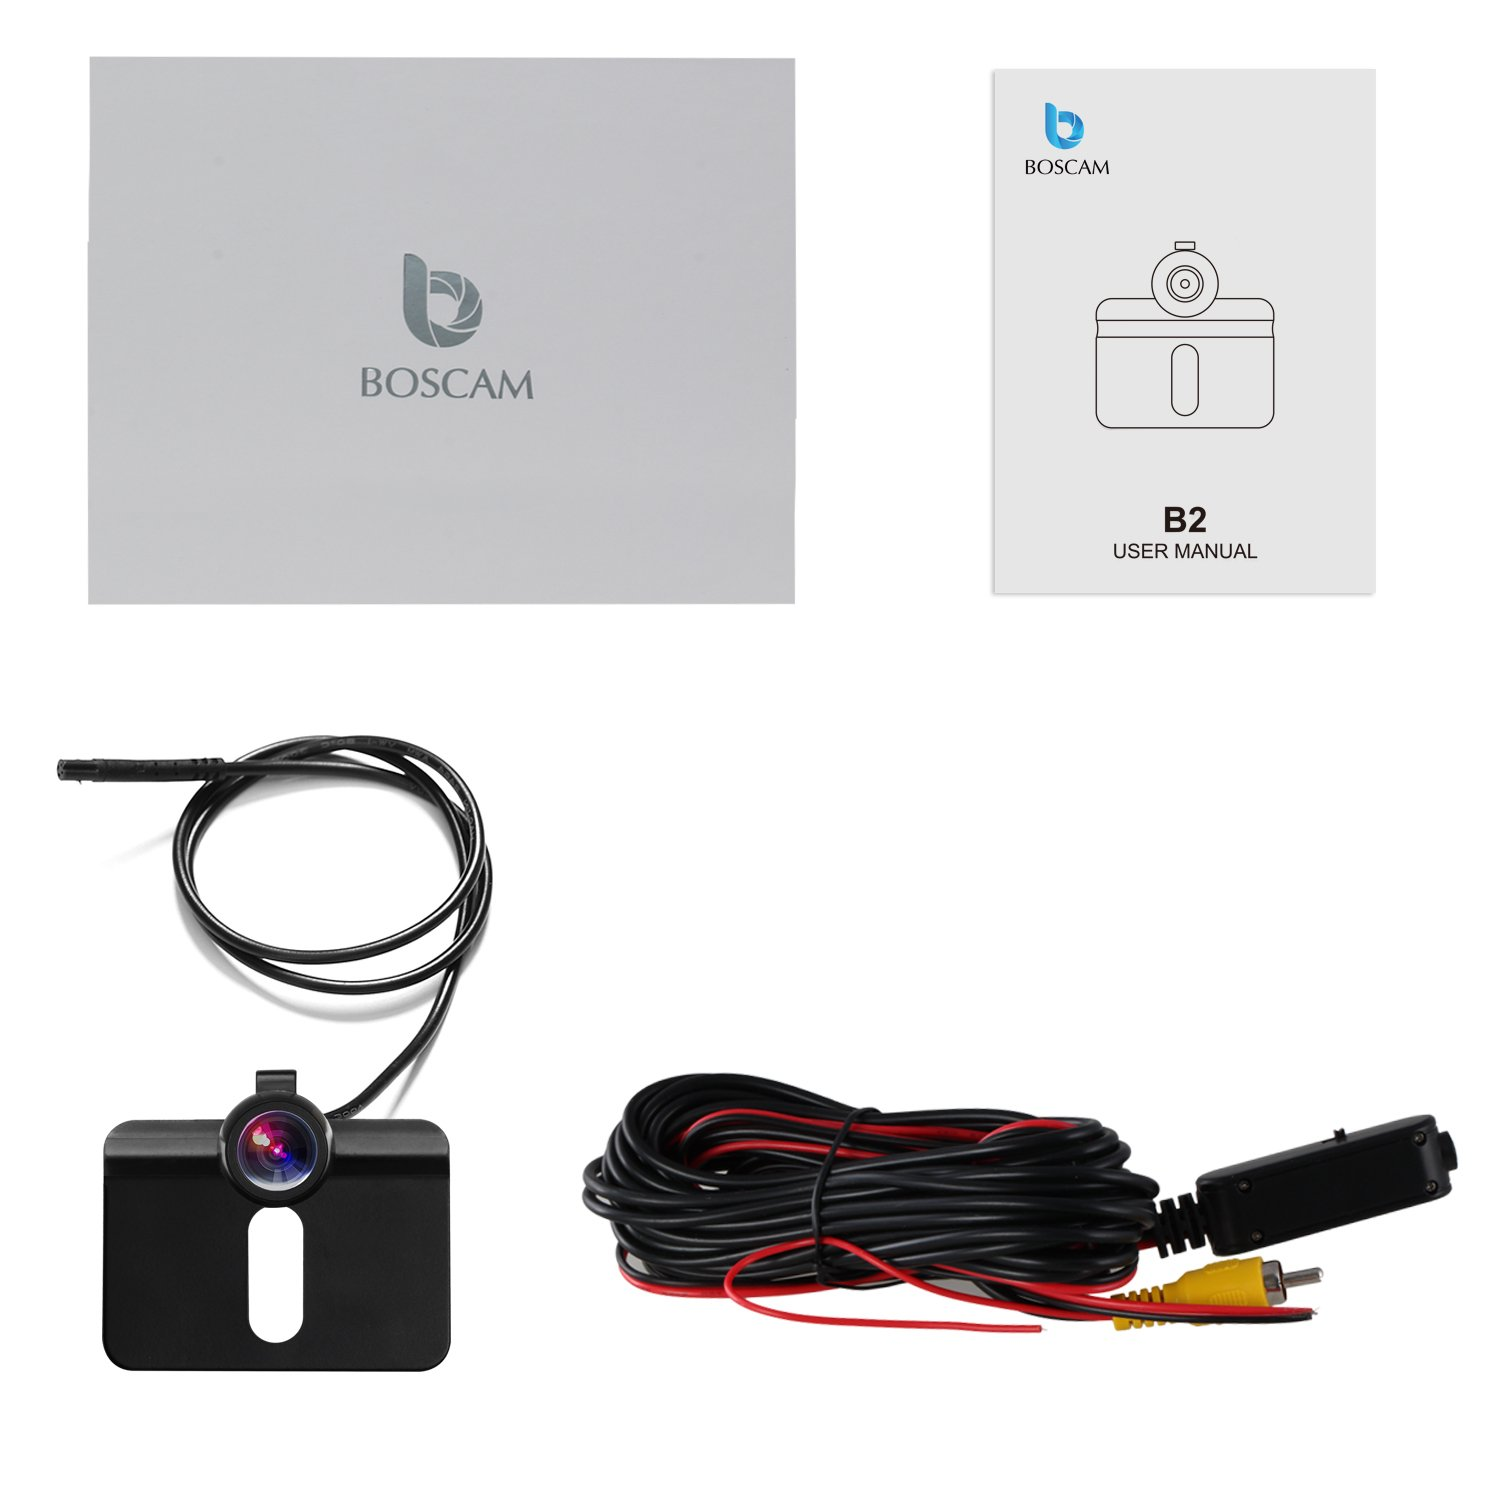 BOSCAM B2 Backup Camera Waterproof Wide Viewing Angle License Plate Rear View Camera Auto Backup System